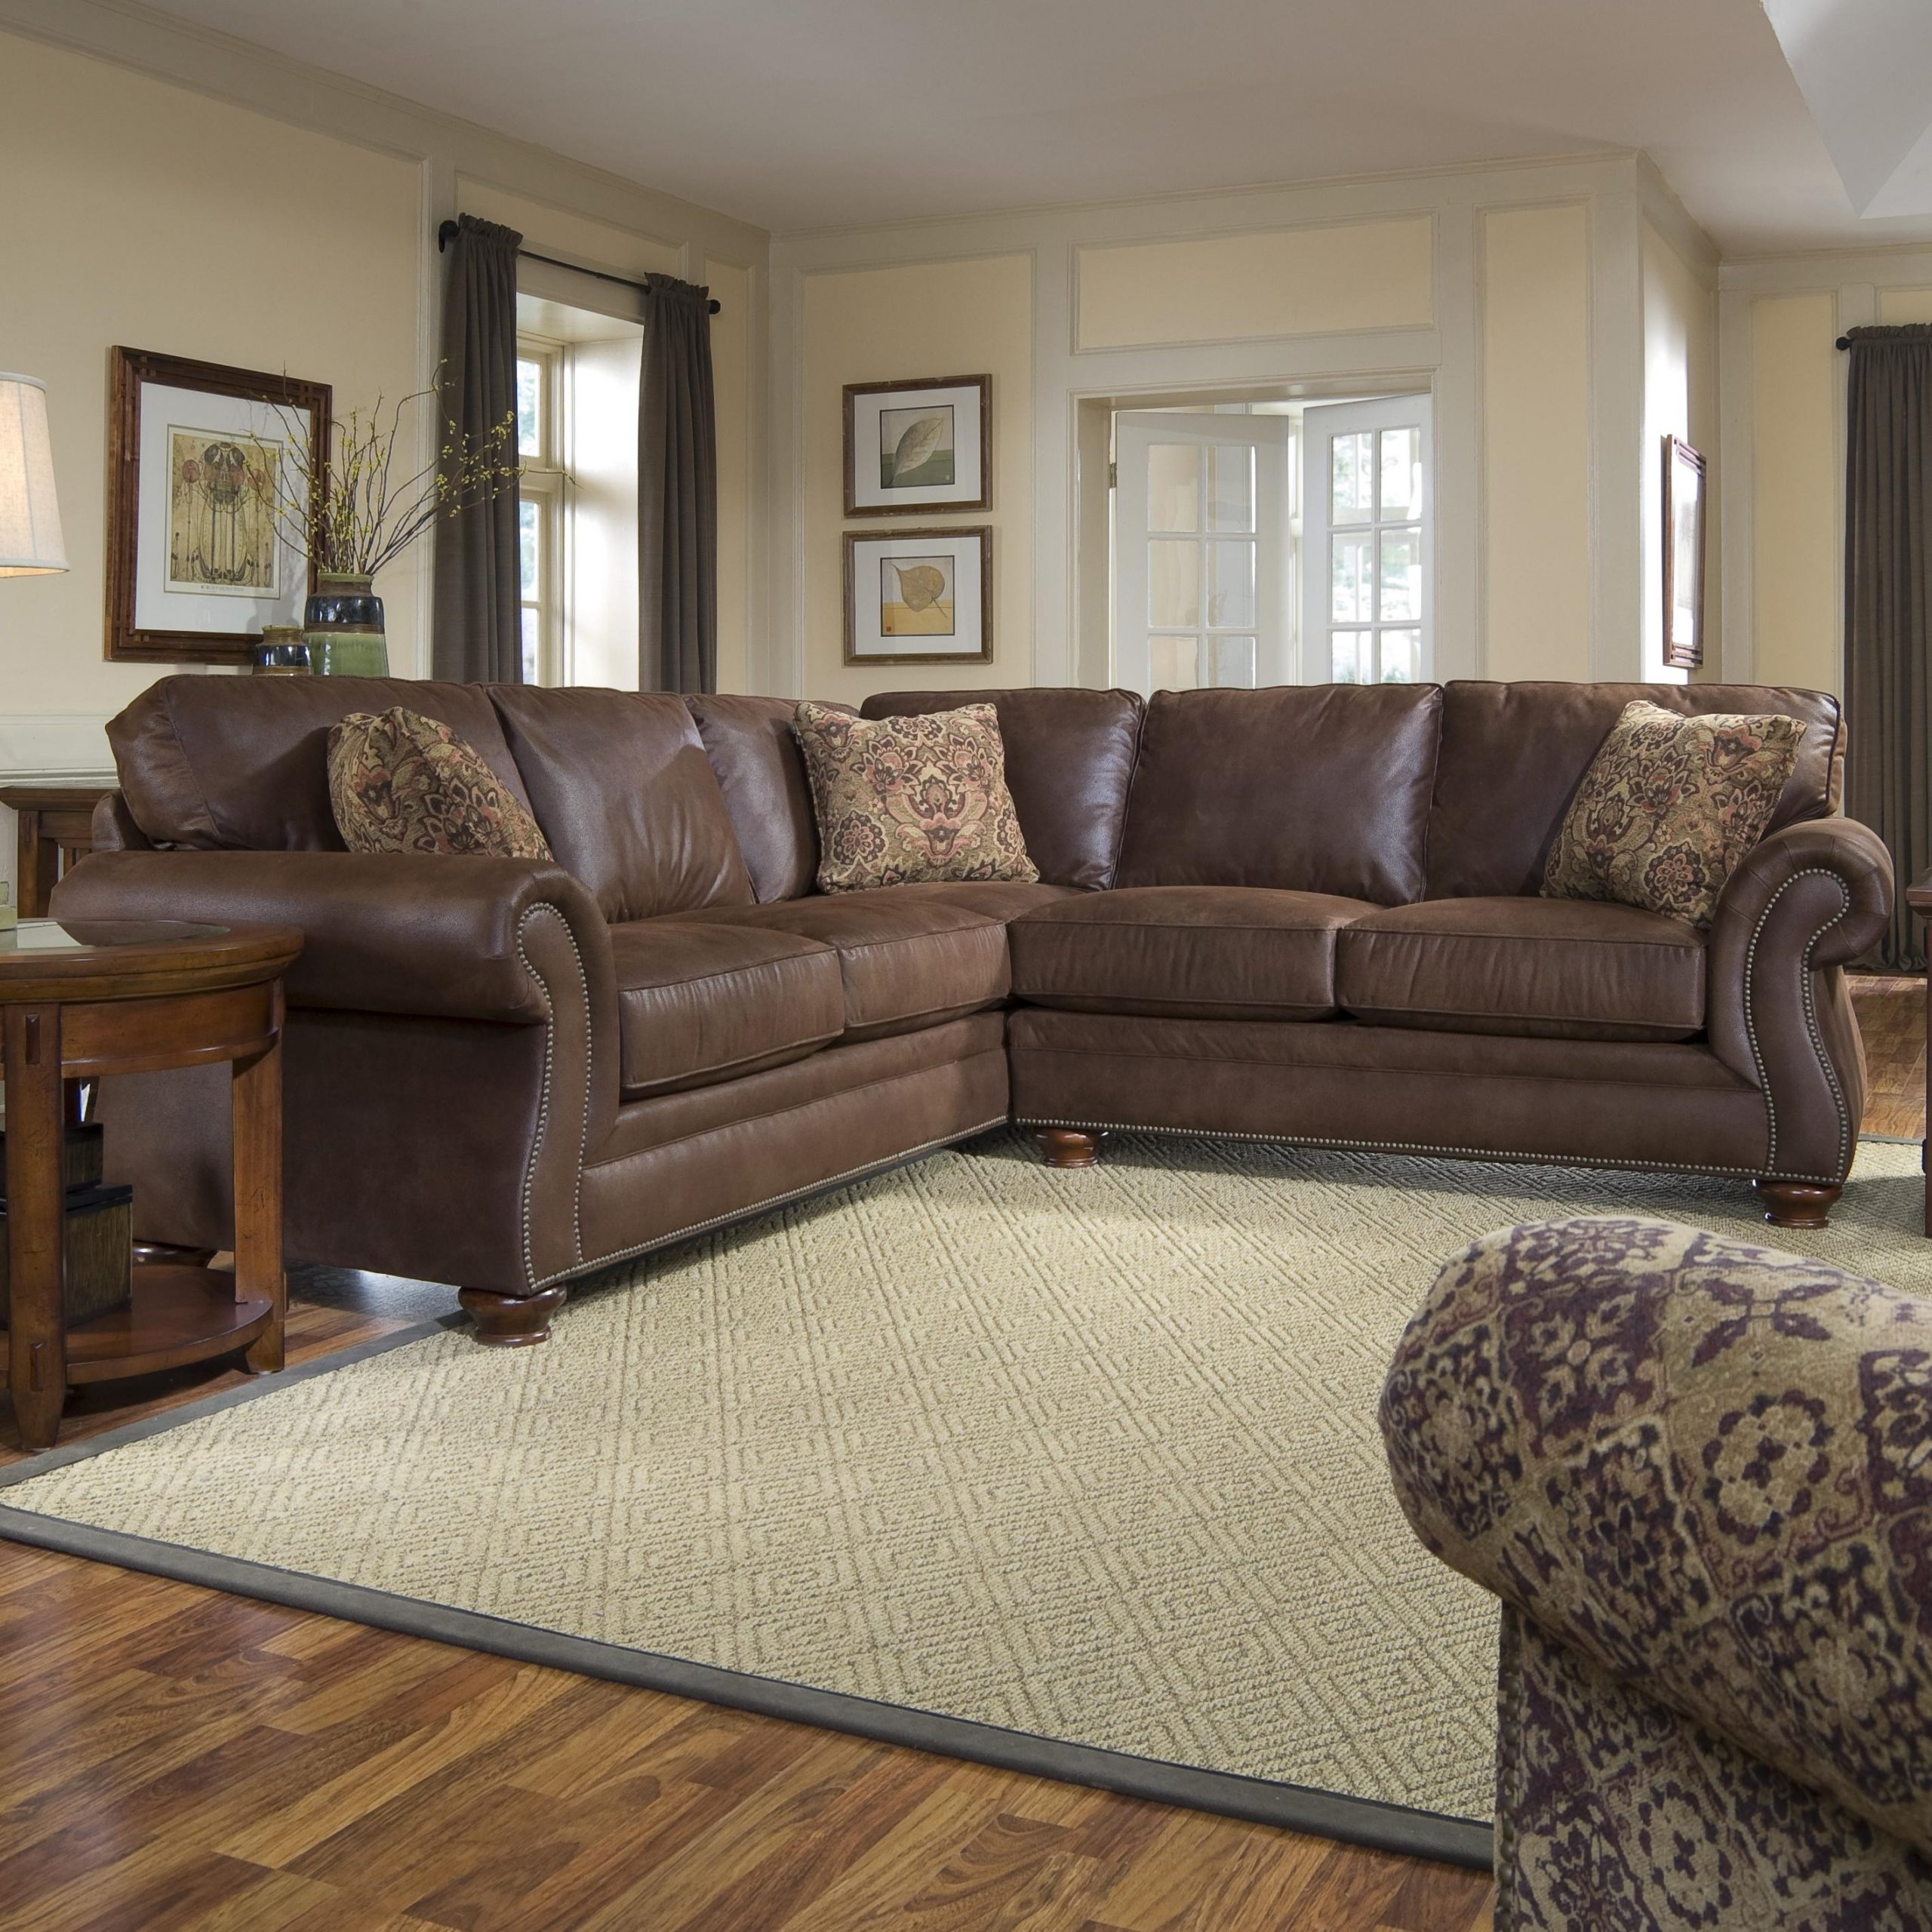 Broyhill Laramie Sofa Laramie Brown Ottoman Gallery Intended For Broyhill Sectional Sofas (View 1 of 15)